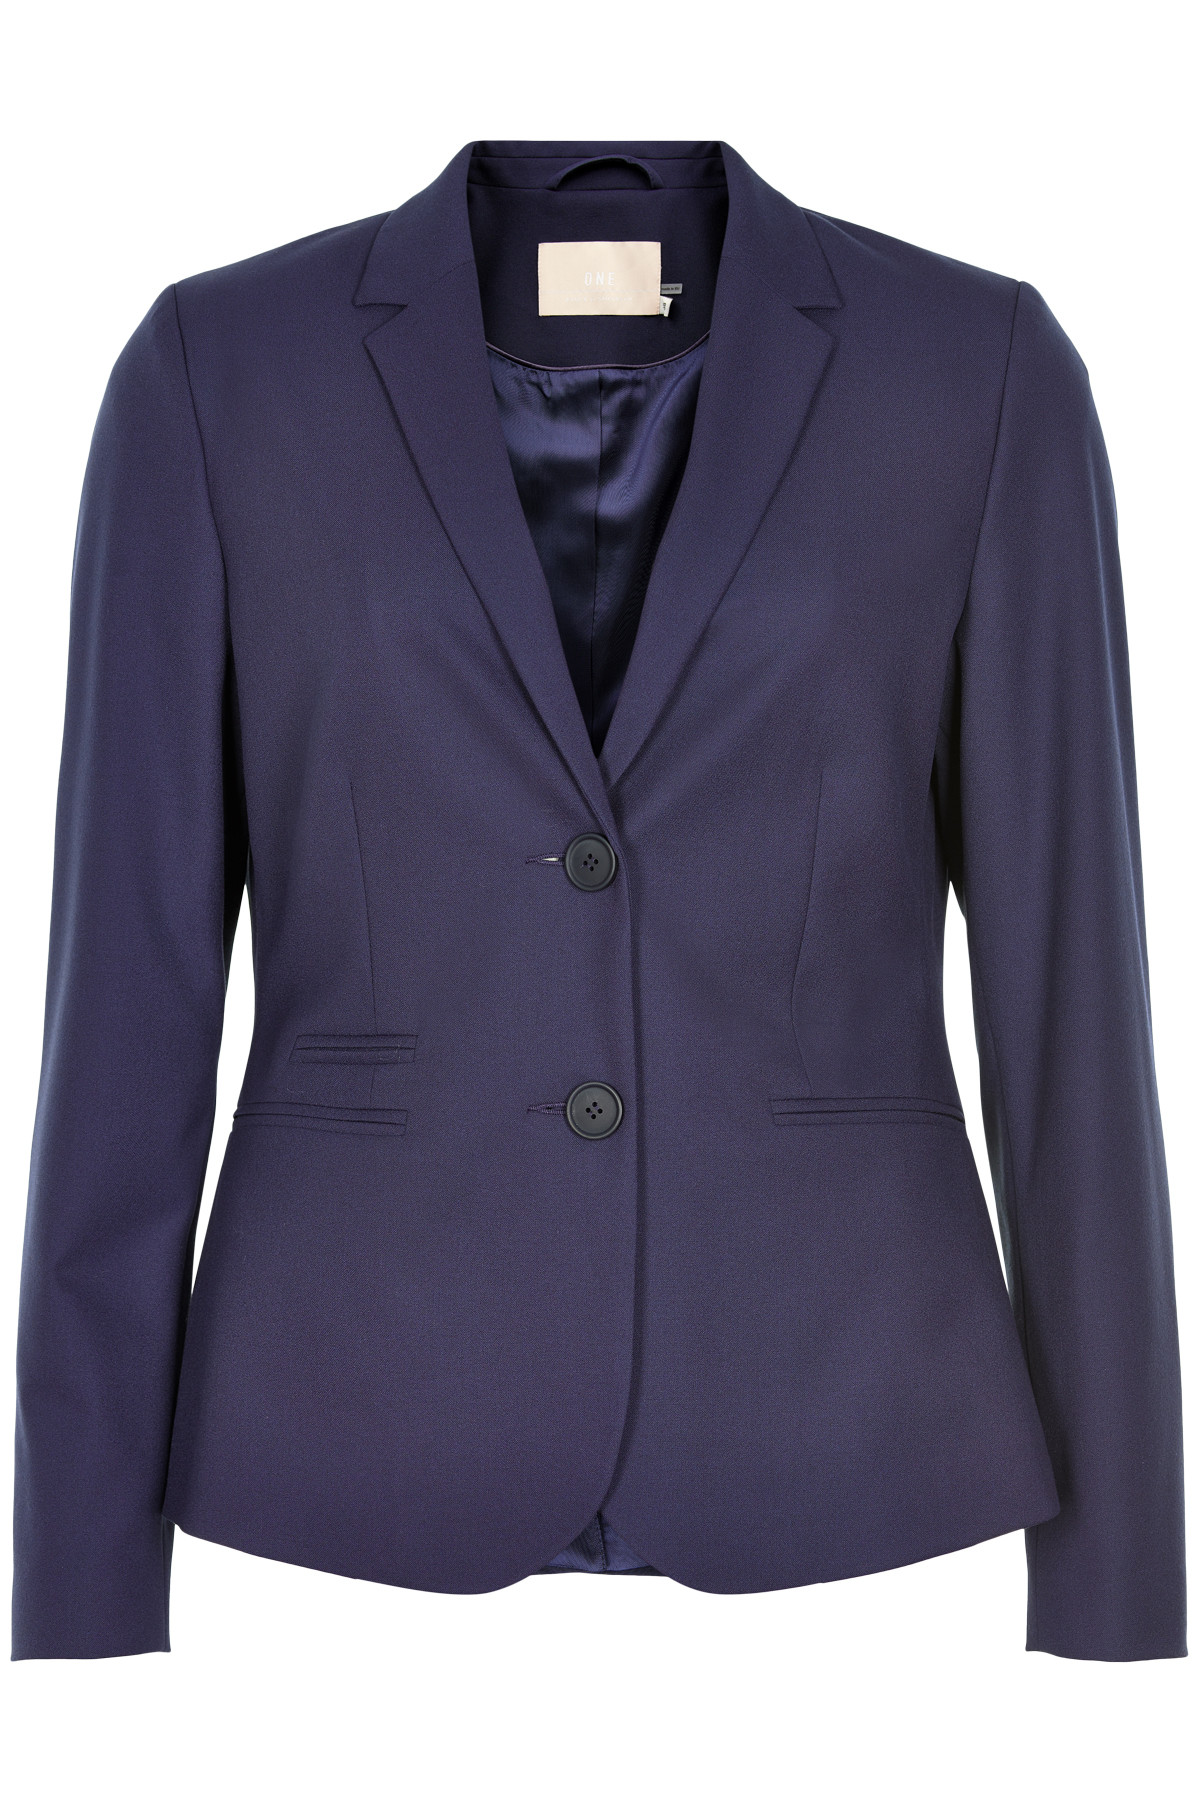 Image of   KAREN BY SIMONSEN SYDNEY BLAZER 10102089 (Dark Blue 40520, 36)